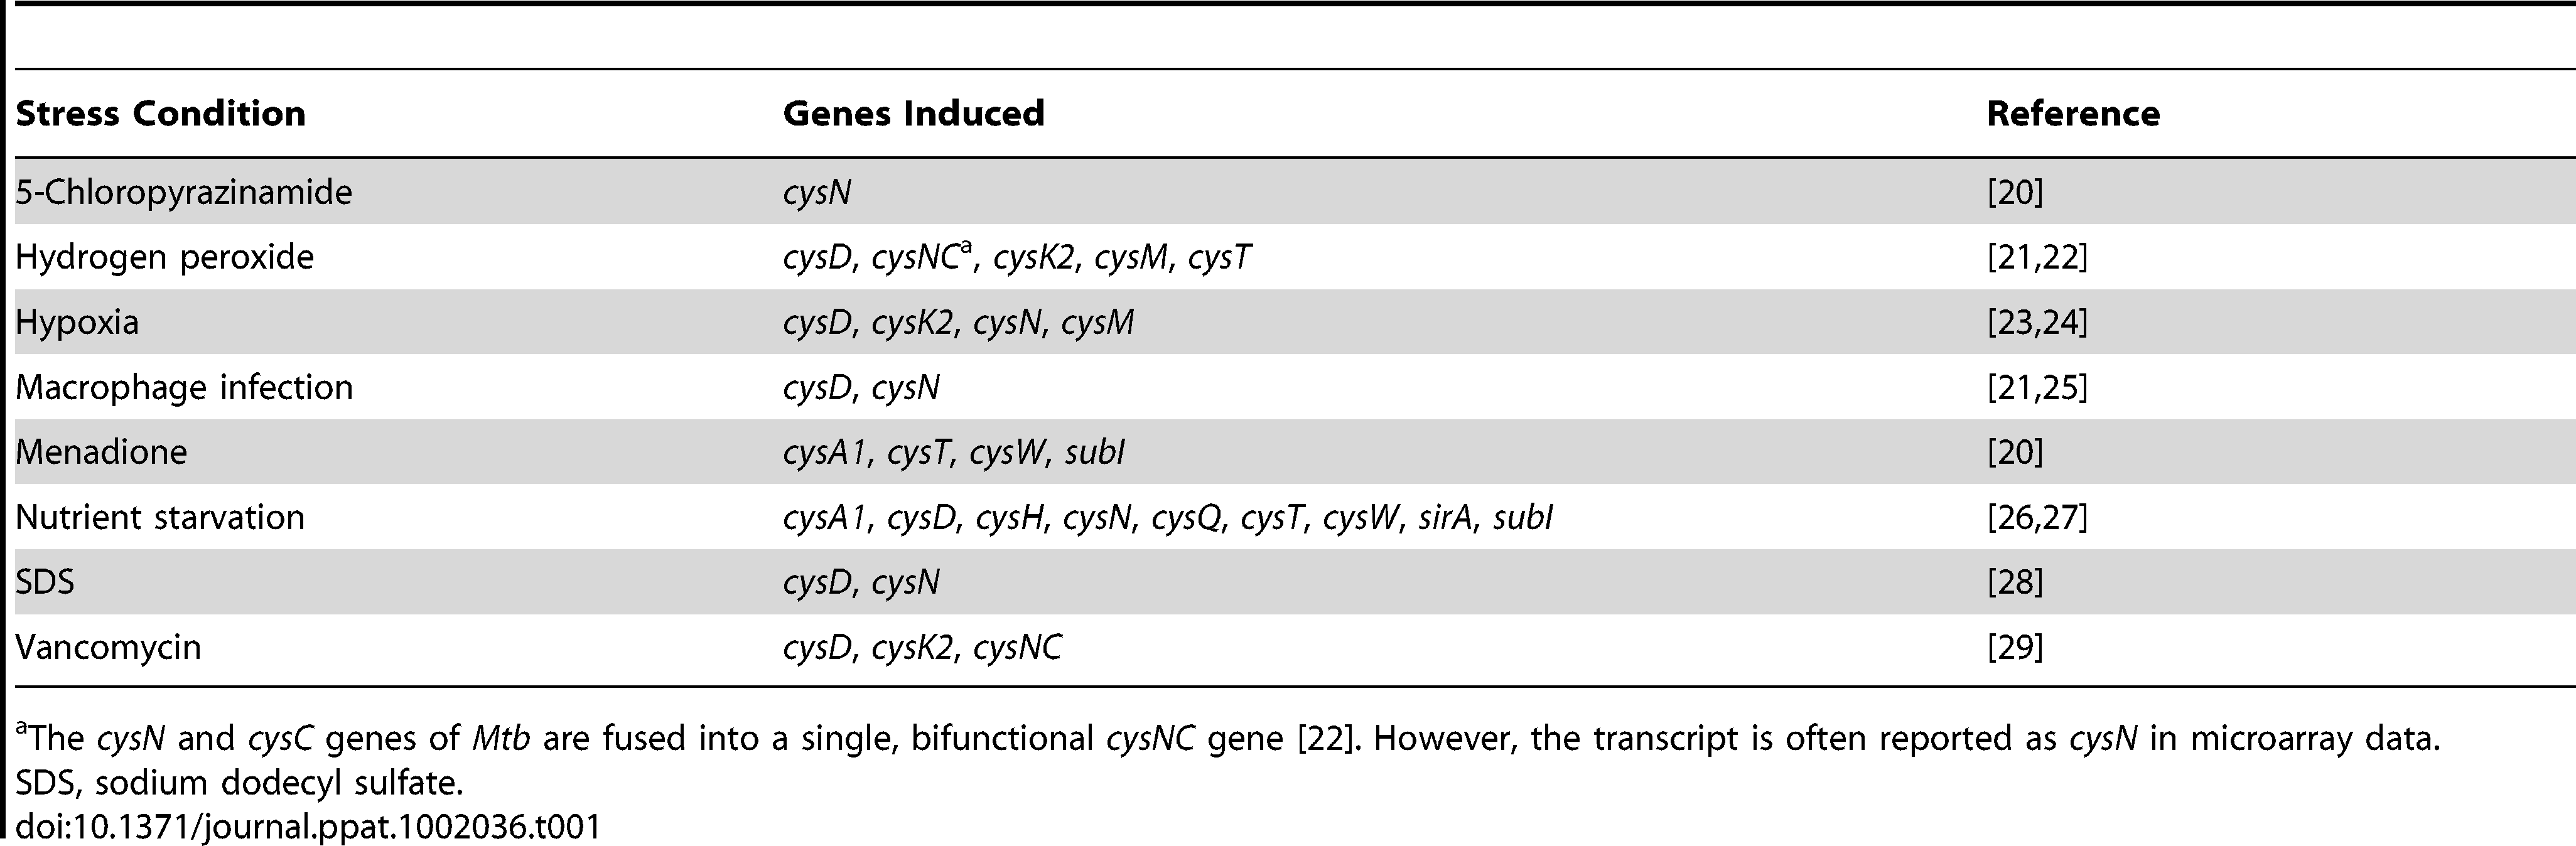 Sulfur metabolism genes from <i>M. tuberculosis</i> induced by various conditions of environmental stress.